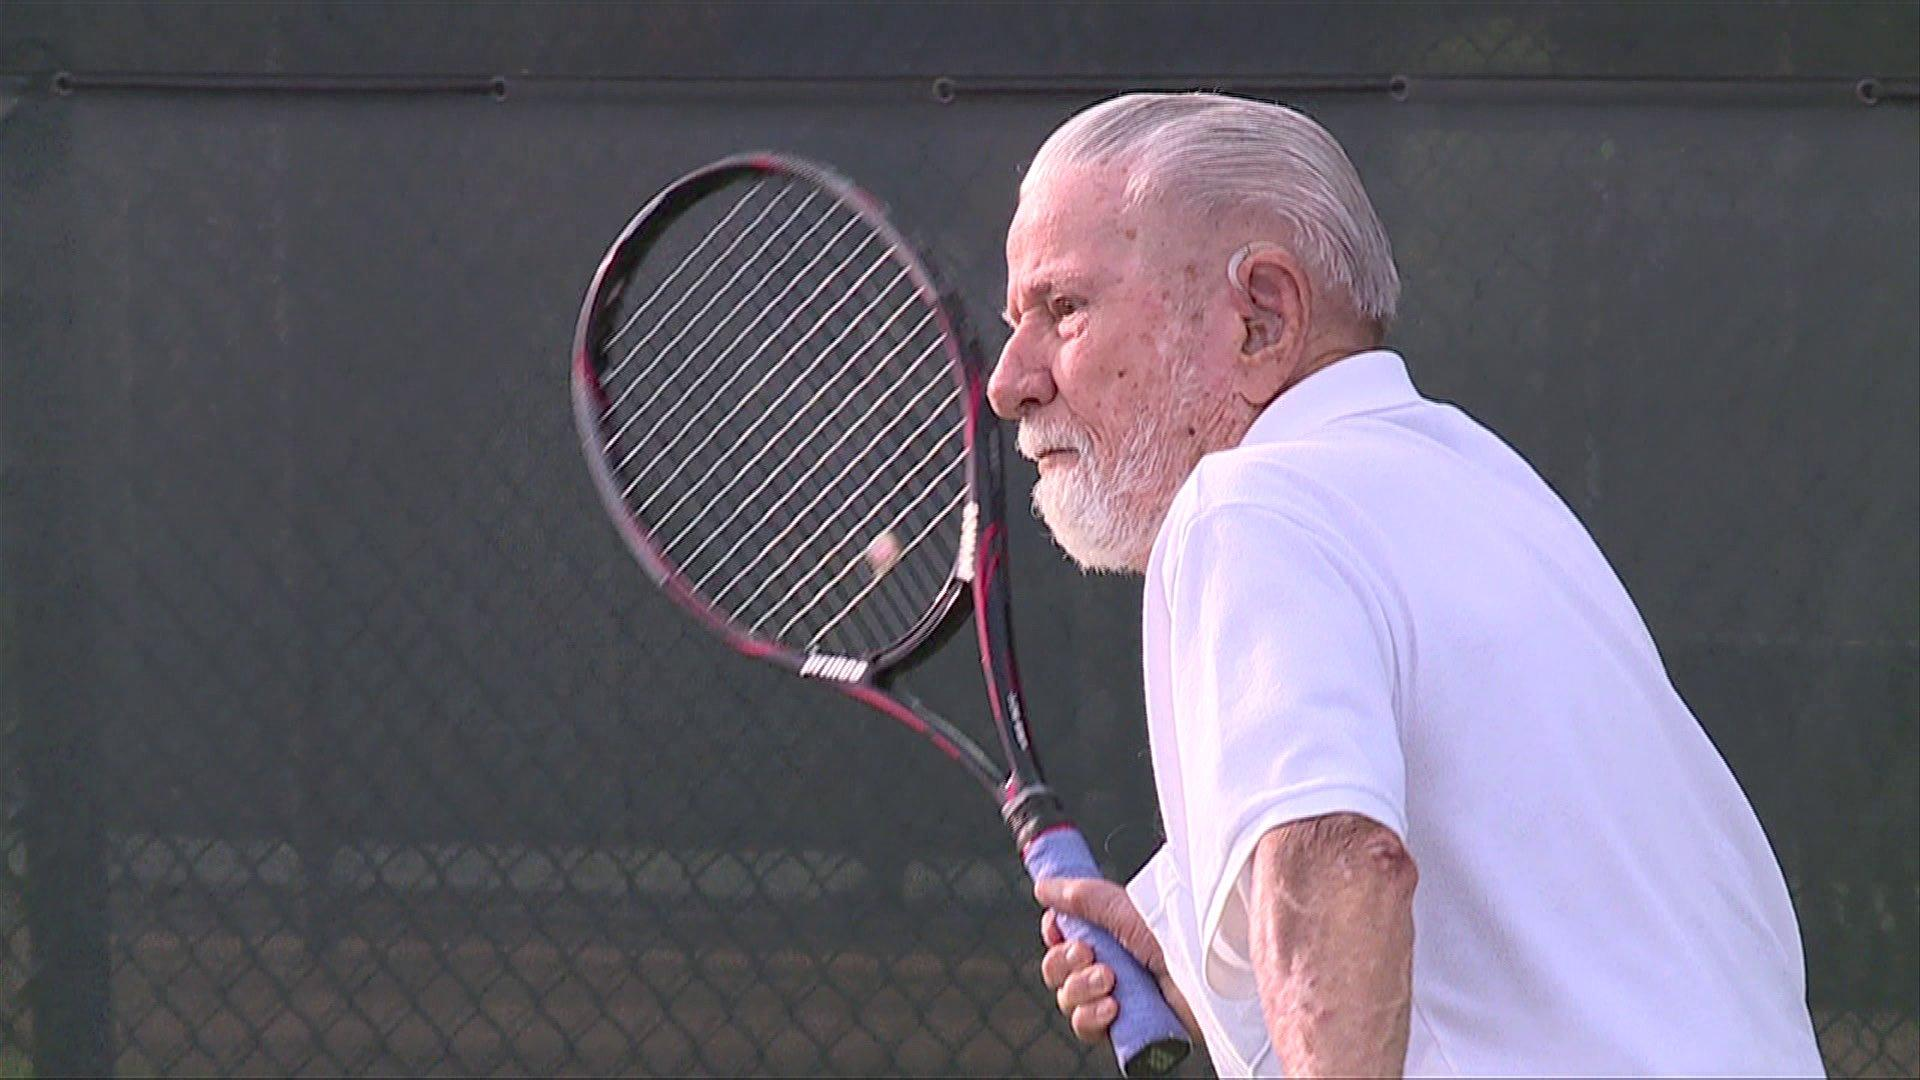 100-Year-Old Man Says Tennis is Keeping Him Alive